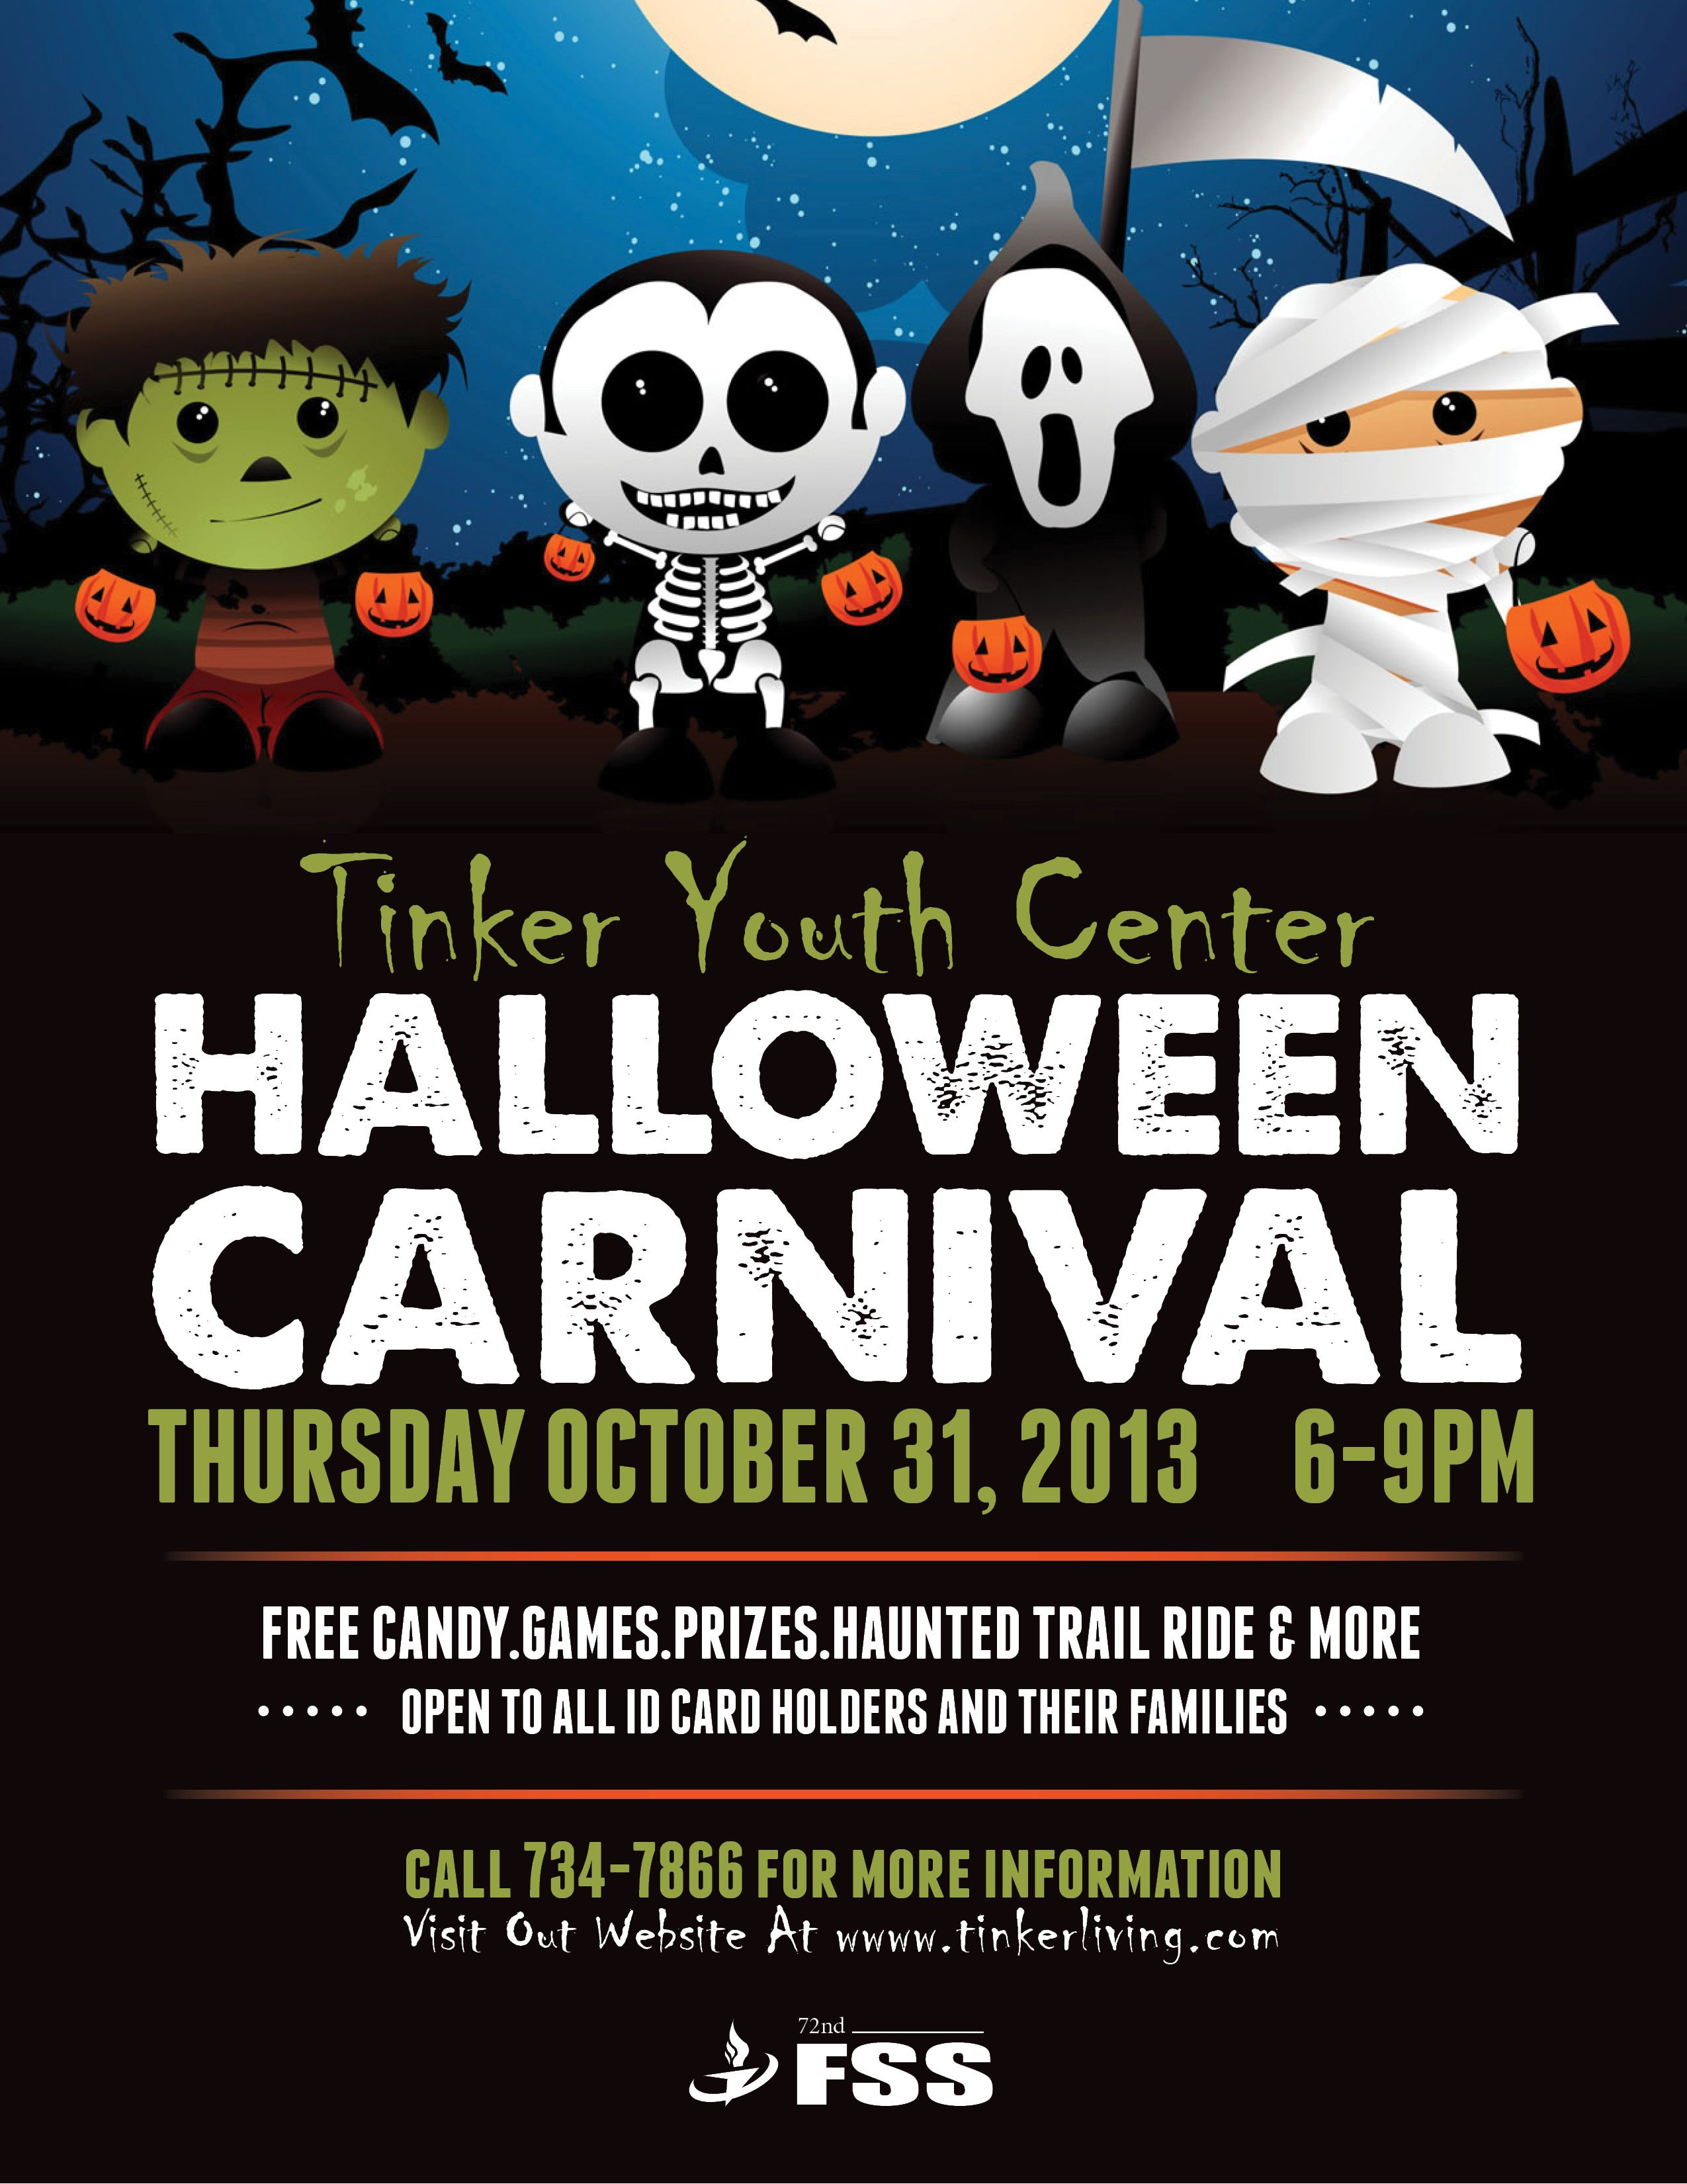 Halloween Costume Contest Flyer Yc Halloween Carnival Flyer ...